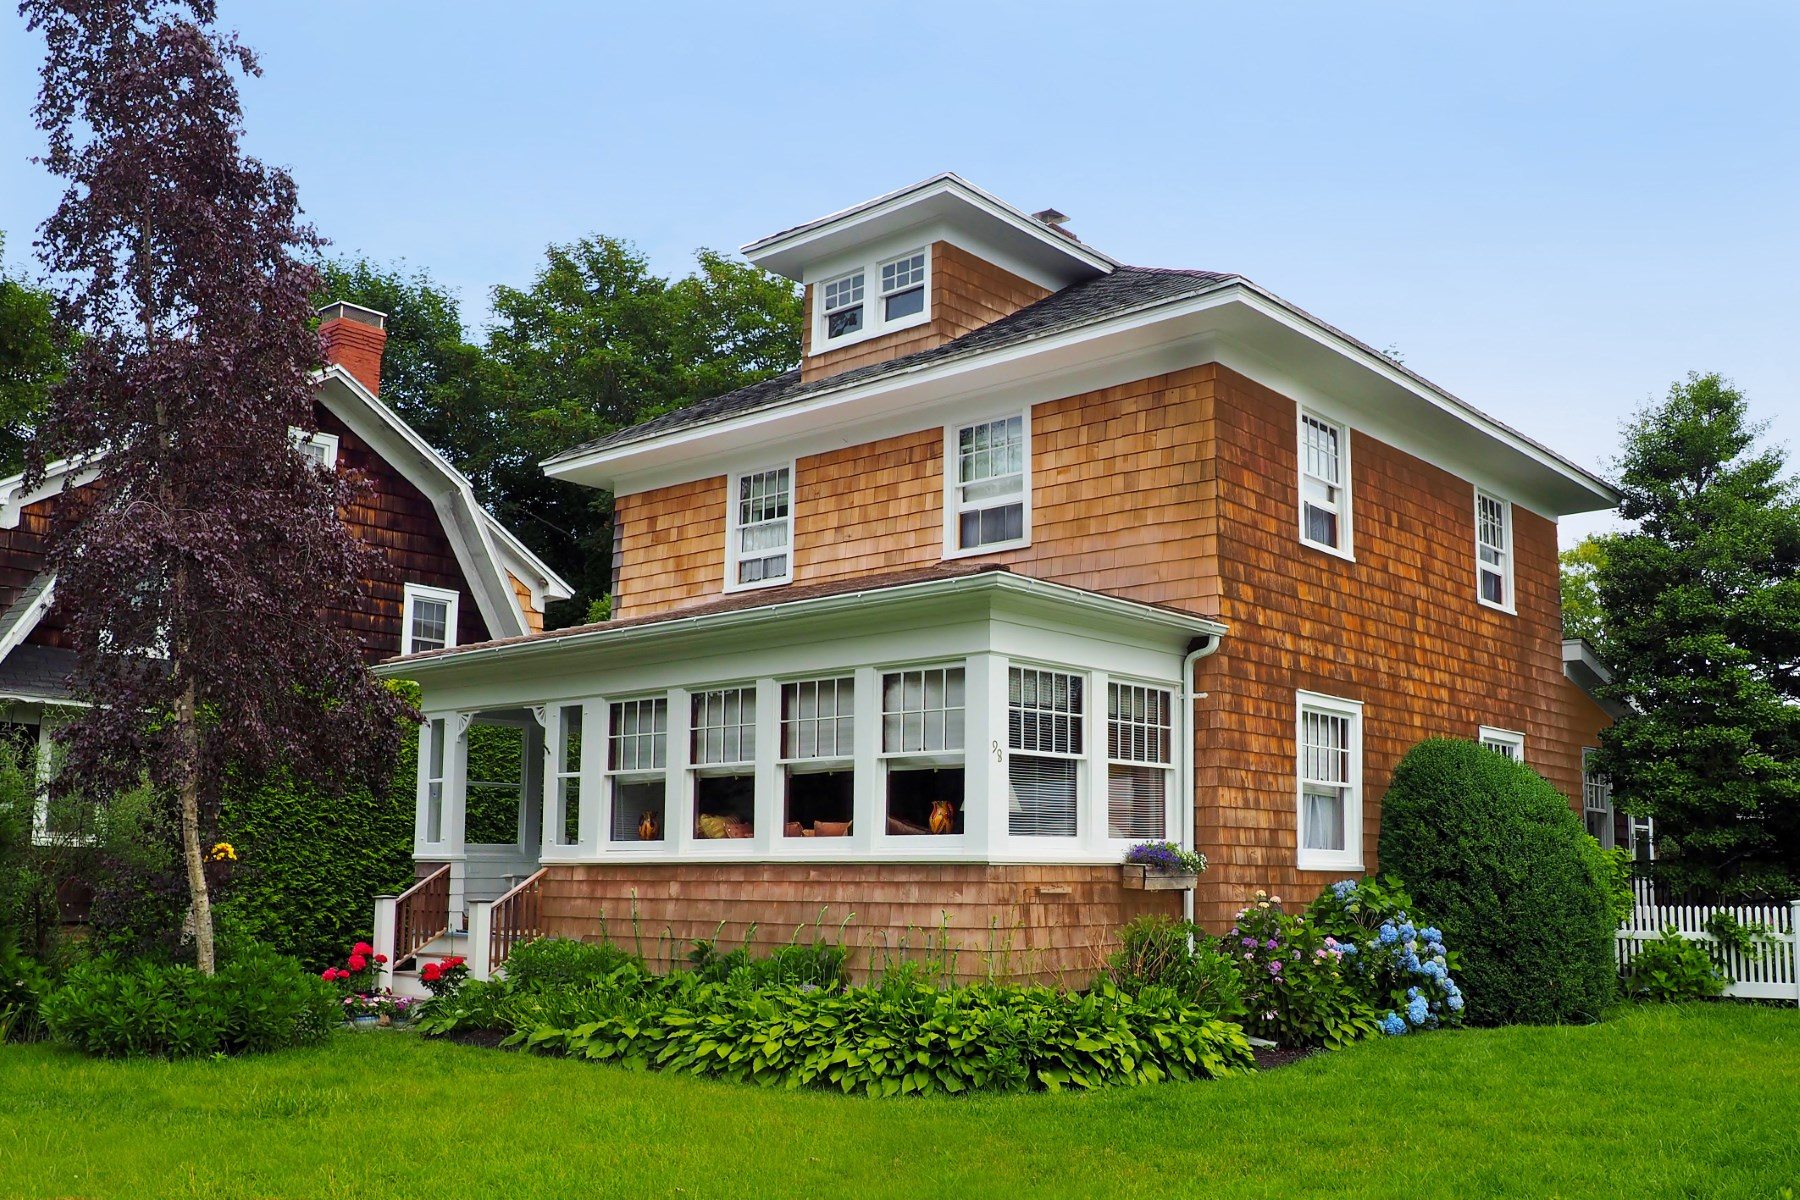 Single Family Home for Sale at Village Charm Minutes From The Ocean 98 Burnett Street Southampton, New York, 11968 United States